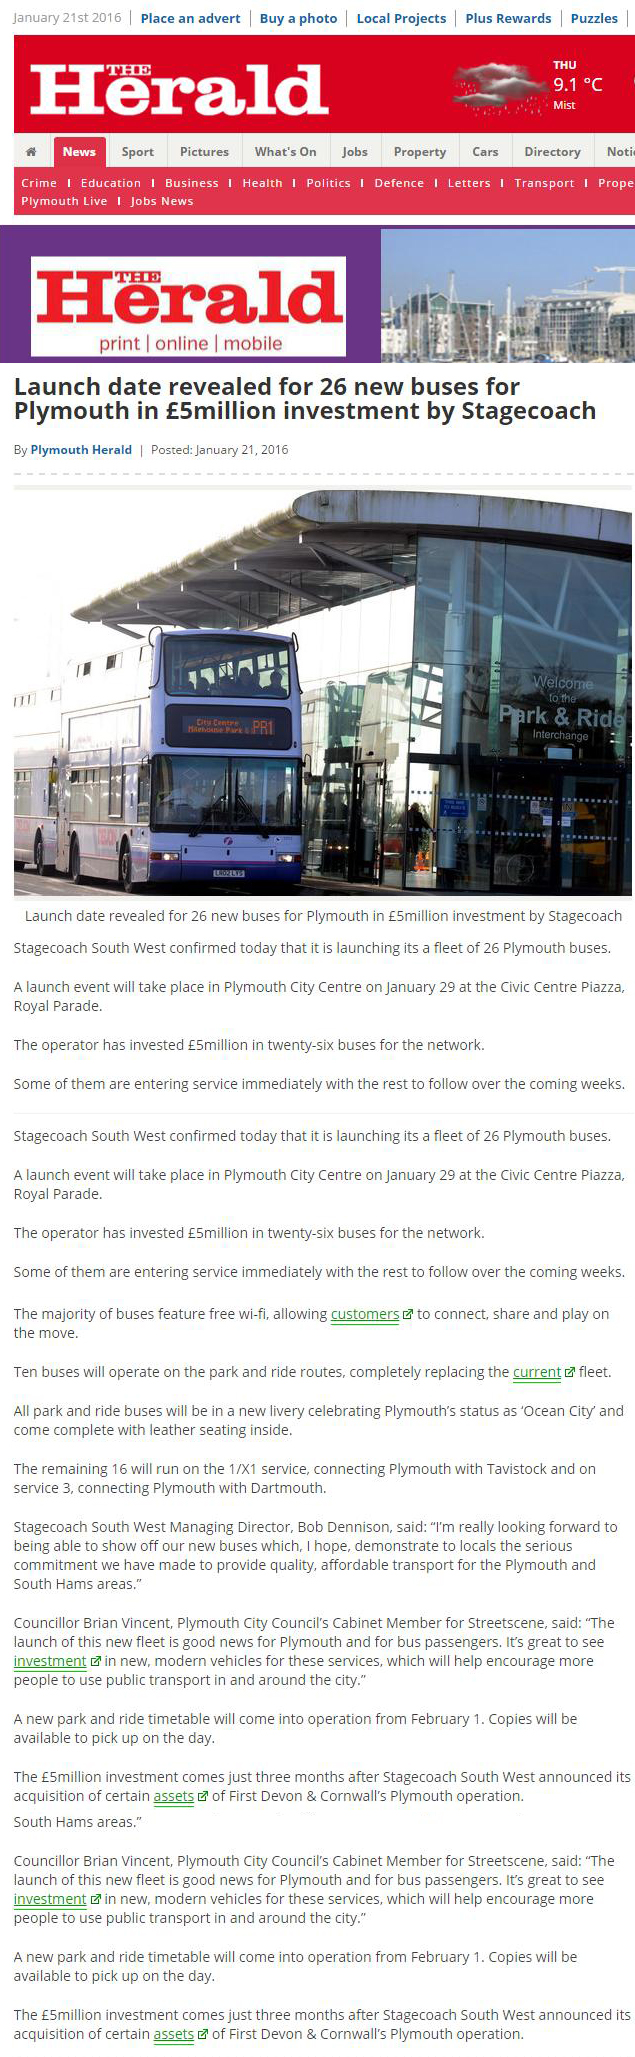 Launch date revealed for 26 new buses for Plymouth in £5million investment by Stagecoach - Plymouth Herald